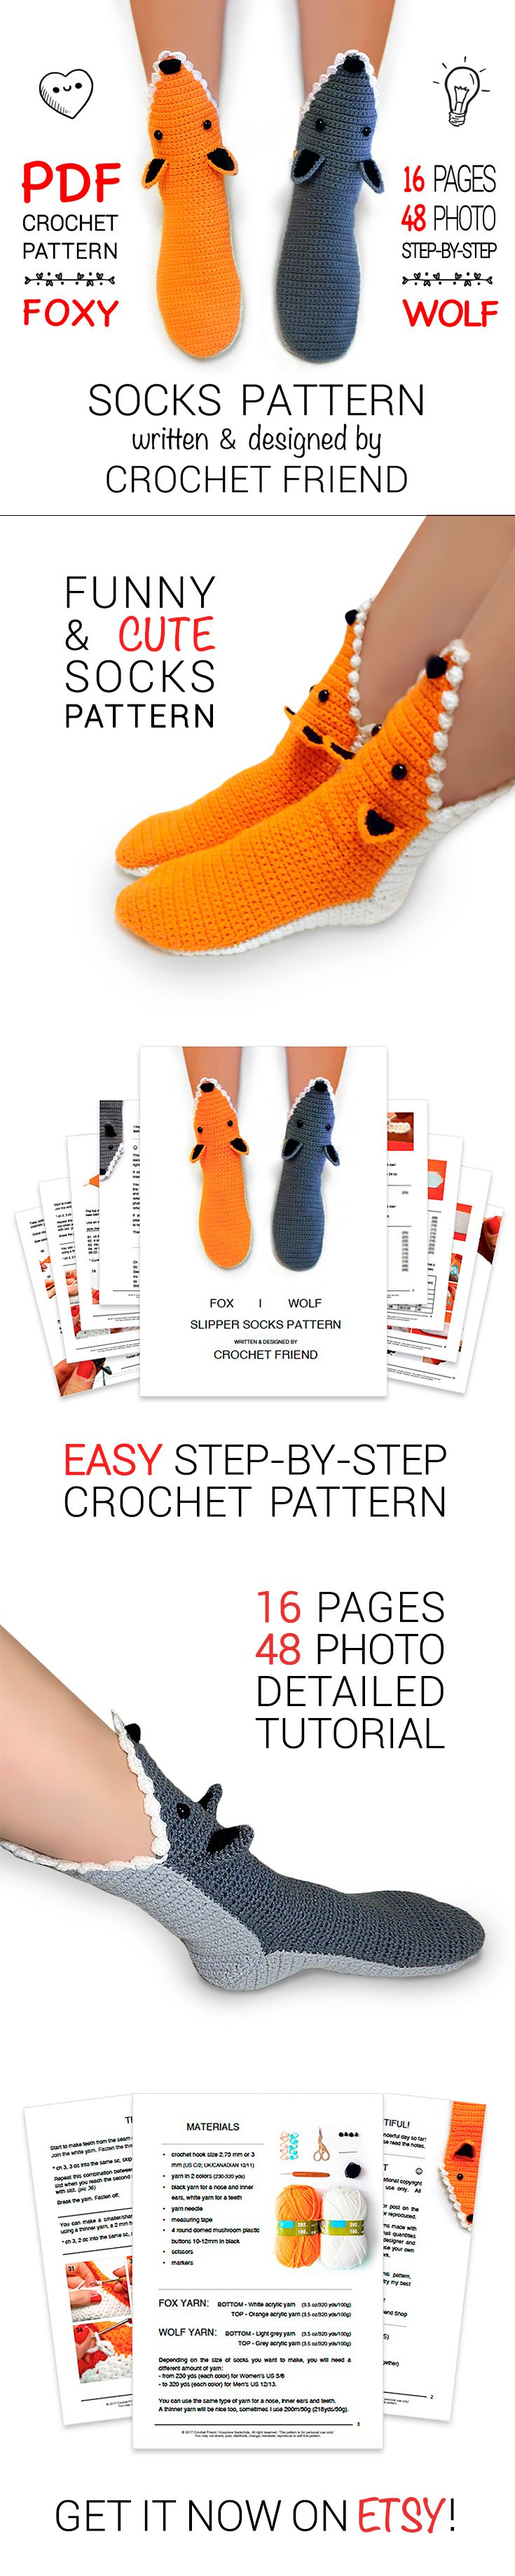 CROCHET PATTERN | Fox & Wolf Funny & Cute Animal Slippers Socks in printable PDF. 16 pages w/ 48 pics. Pattern contains step-by-step tutorial & detailed description ✎ | ✄ CROCHETING SKILLS LEVEL - EASY |⚐ LANGUAGE - ENG | TERMS - US  | ☆ Crochet these cuties by yourself! ☆ GET A PATTERN NOW W/ 25% OFF!  ♡ CROCHET & HAVE FUN! ♡